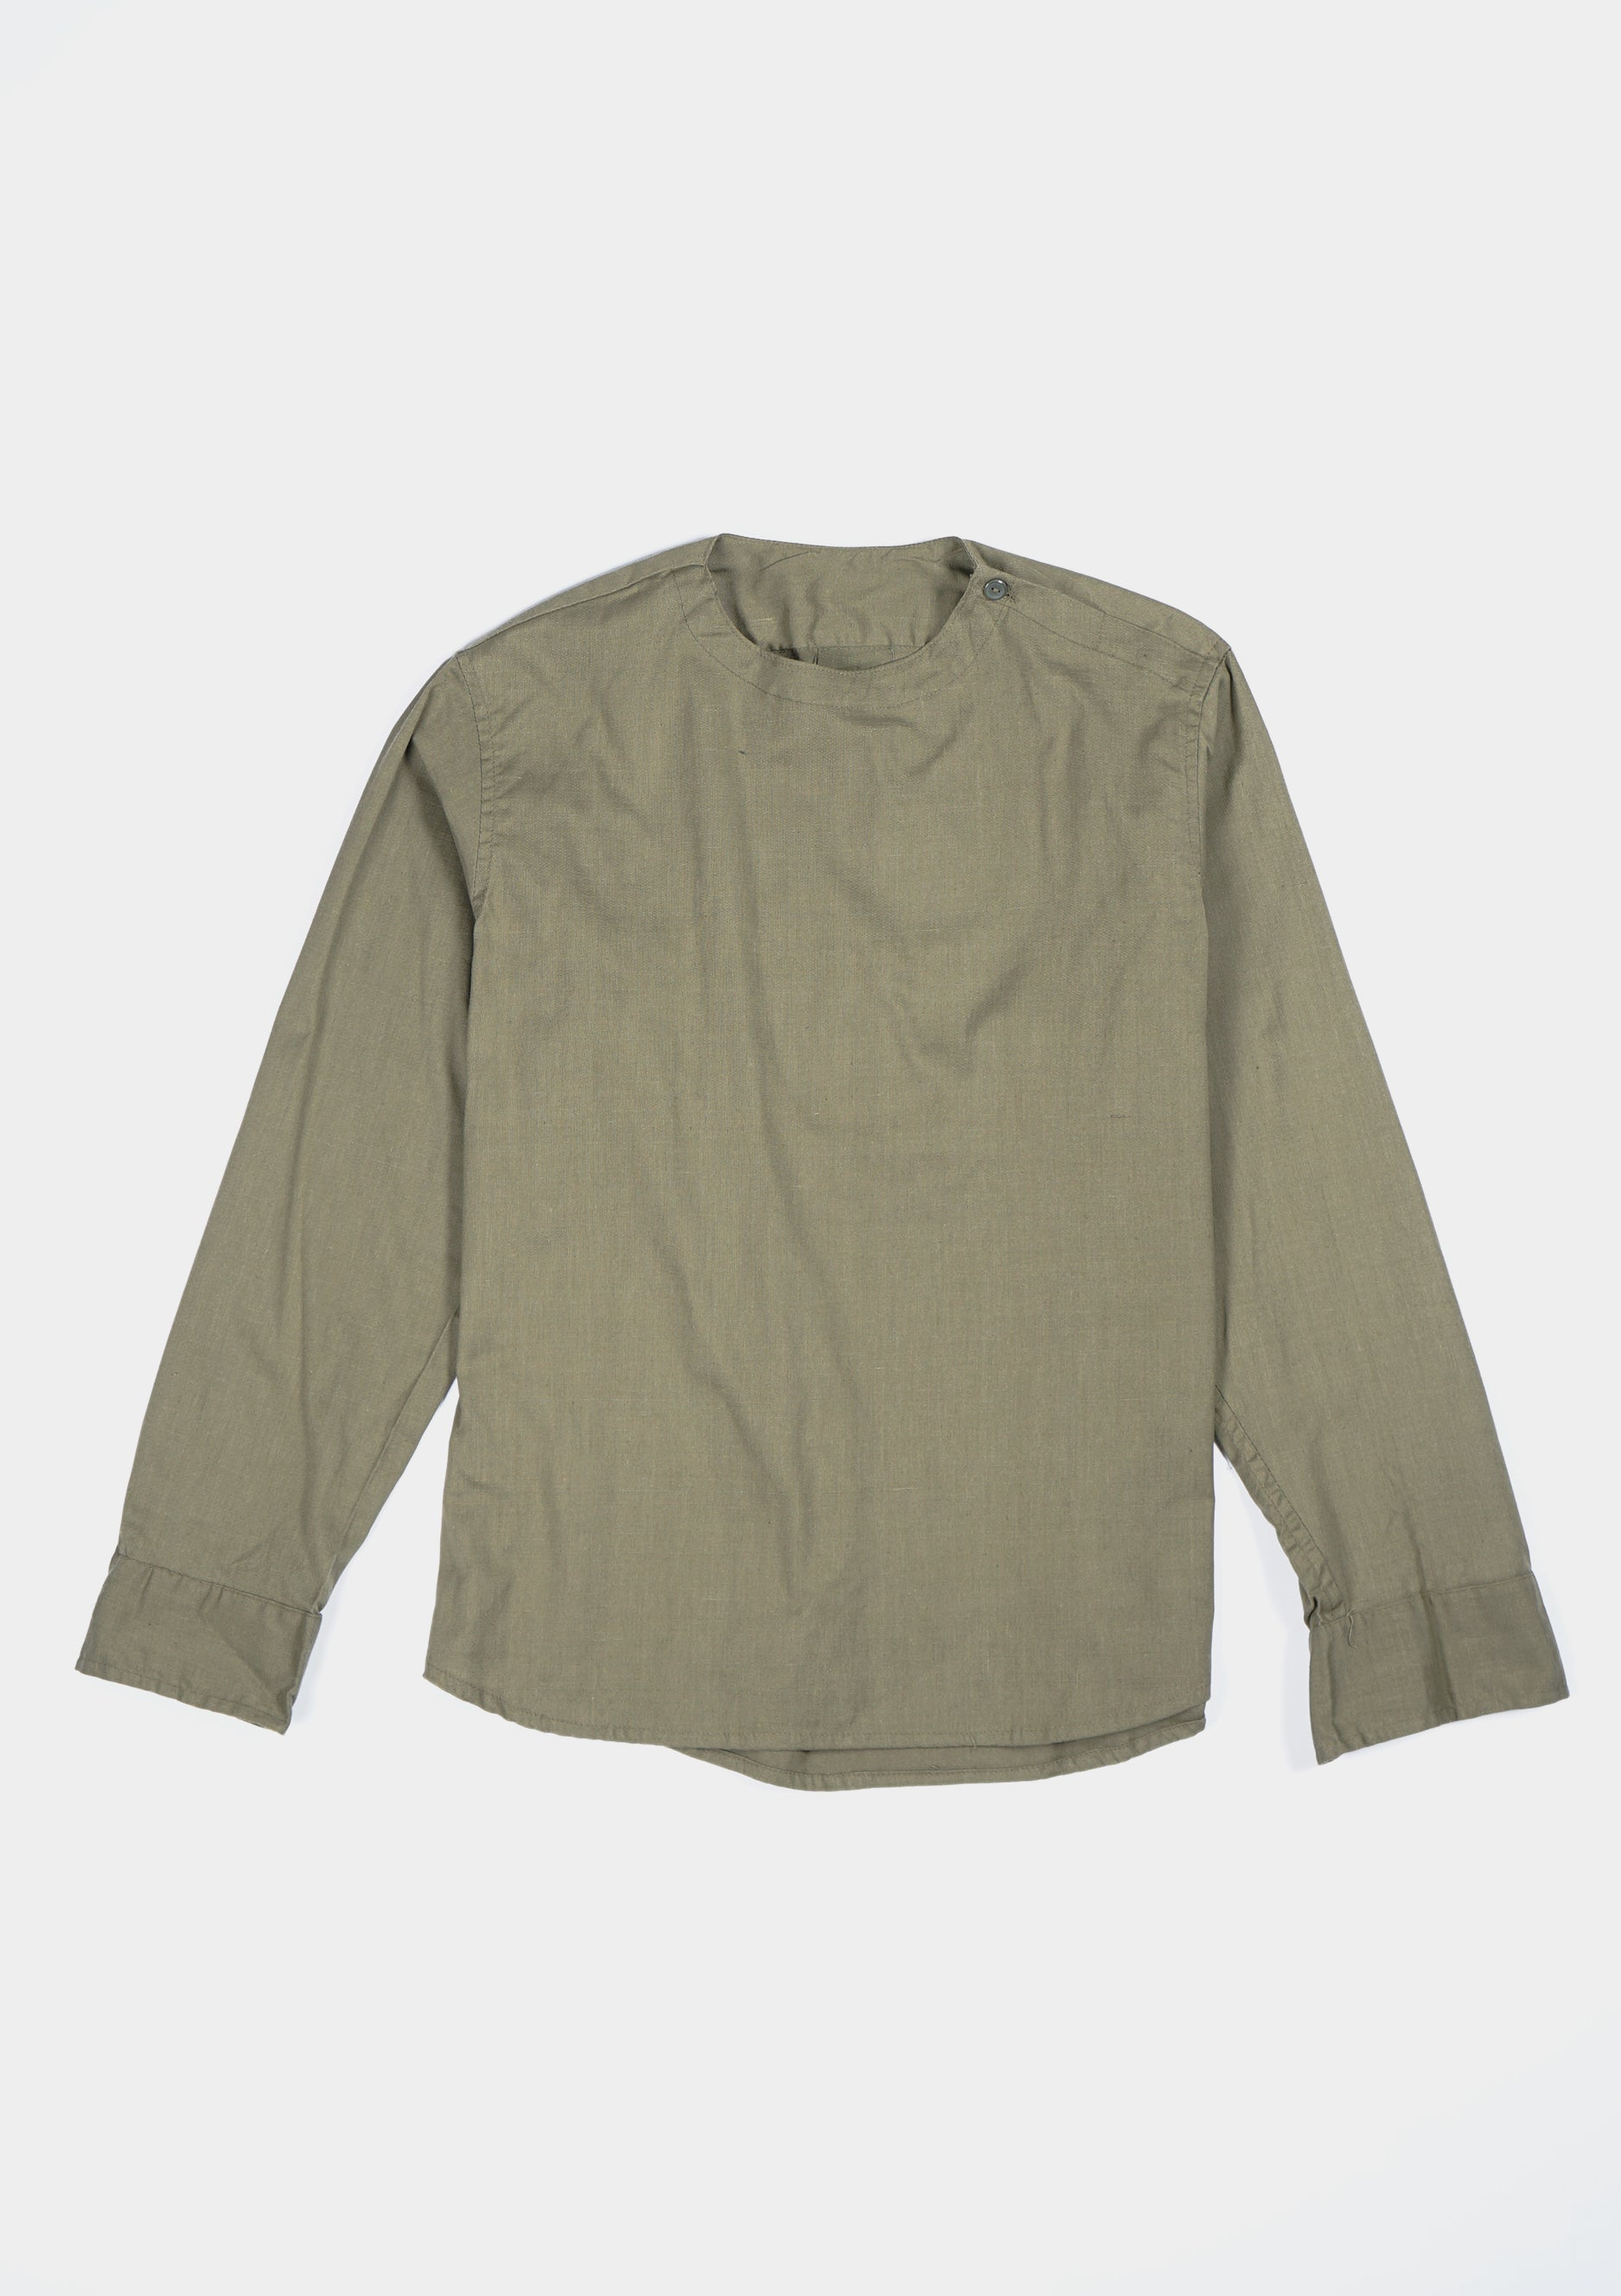 Euro Military Cotton Pullover Shirts